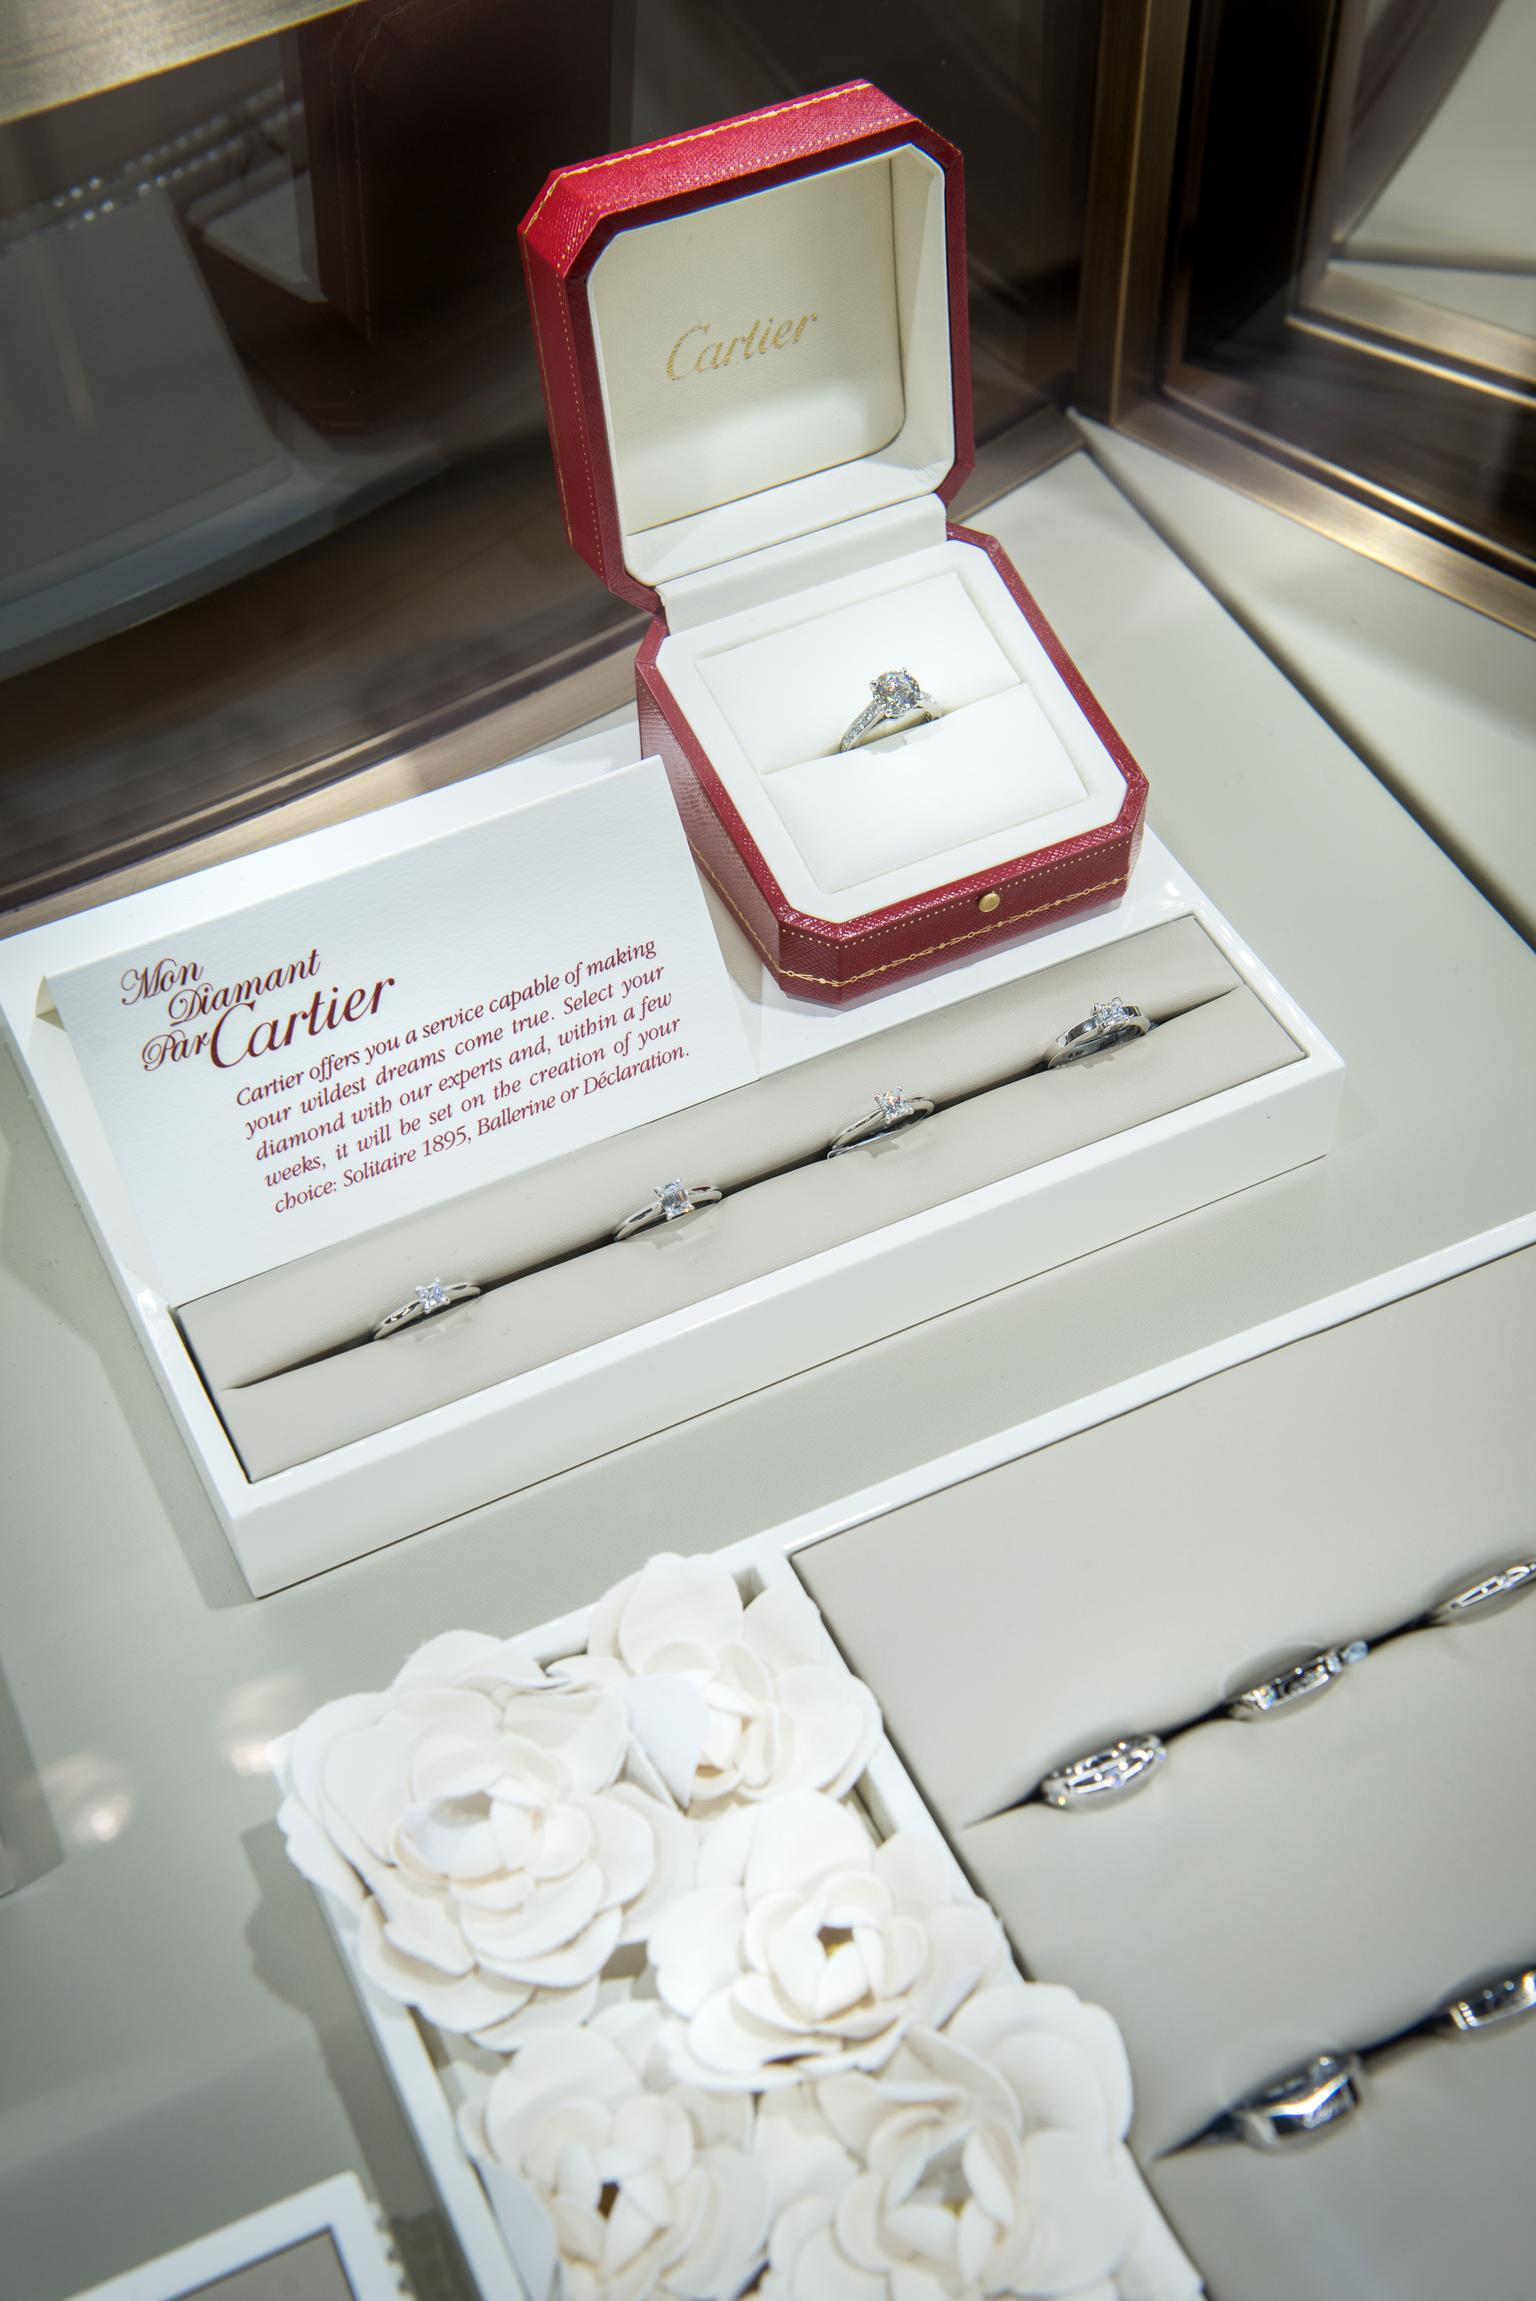 With over 600 engagement rings to choose from, there is something for all tastes and budgets as well as the bespoke three week Set for You custom-made service.